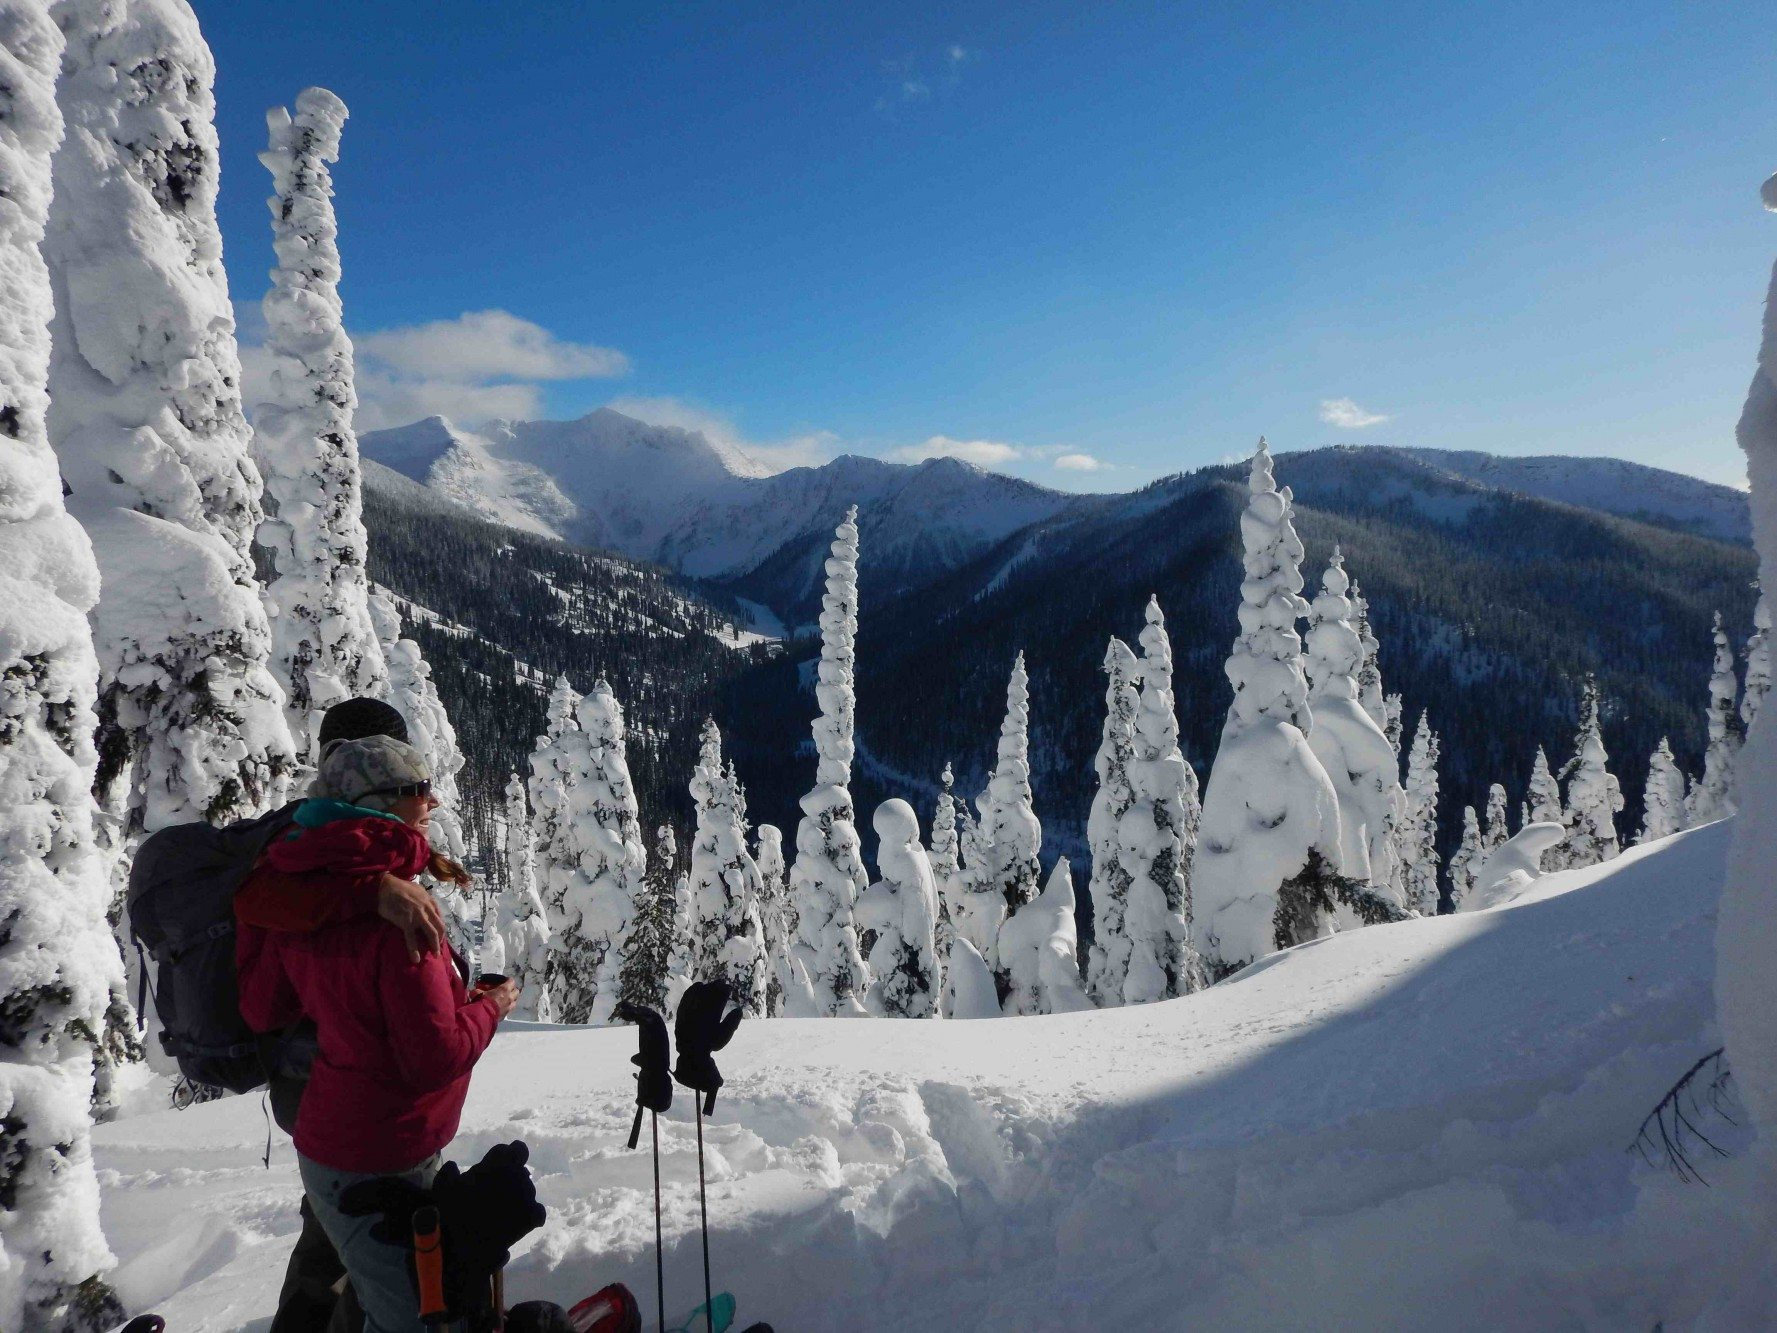 h and d ski touring in nelson photo randy williams